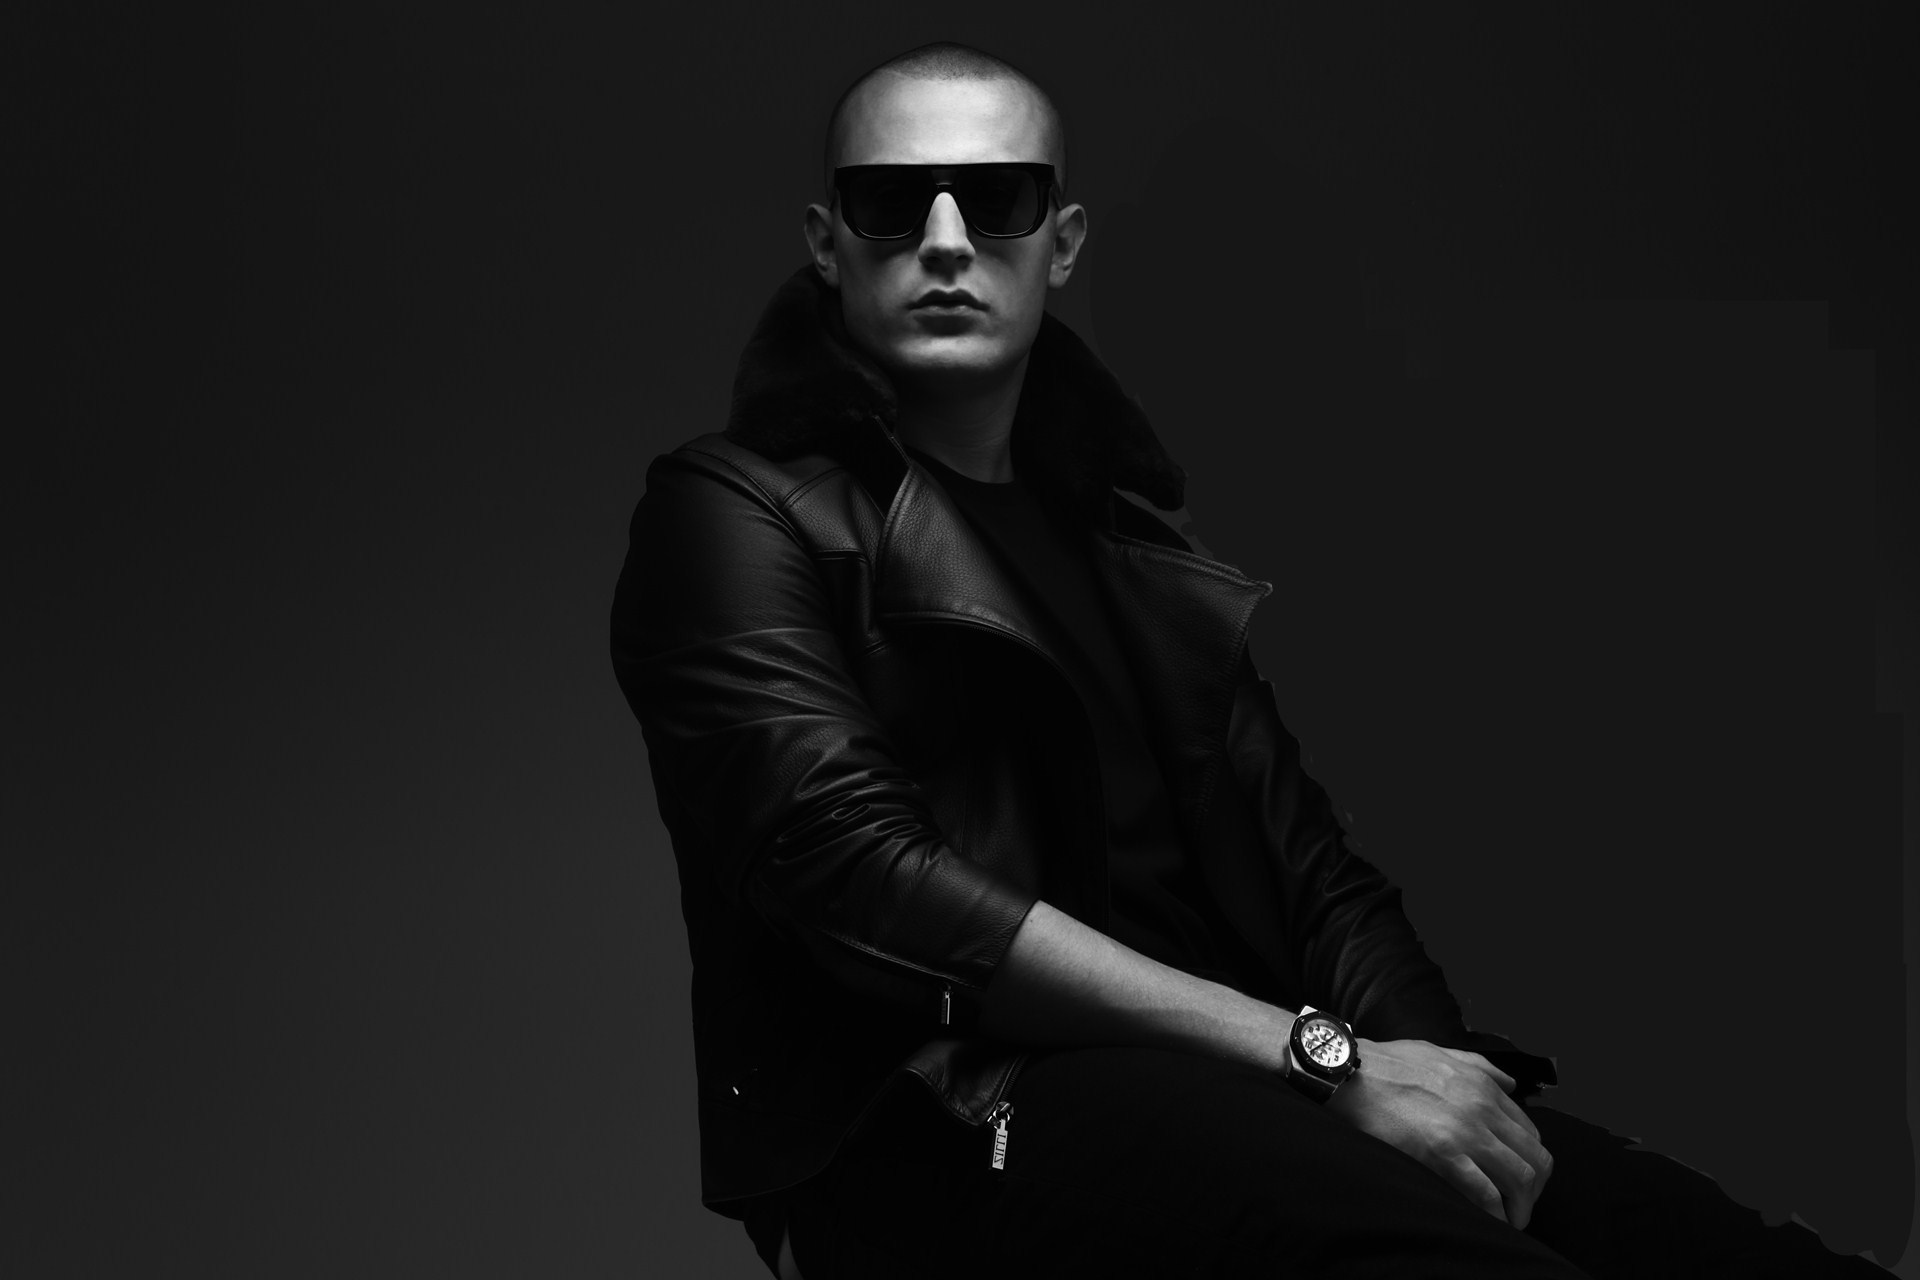 DJ Snake Wallpapers High Resolution And Quality Download